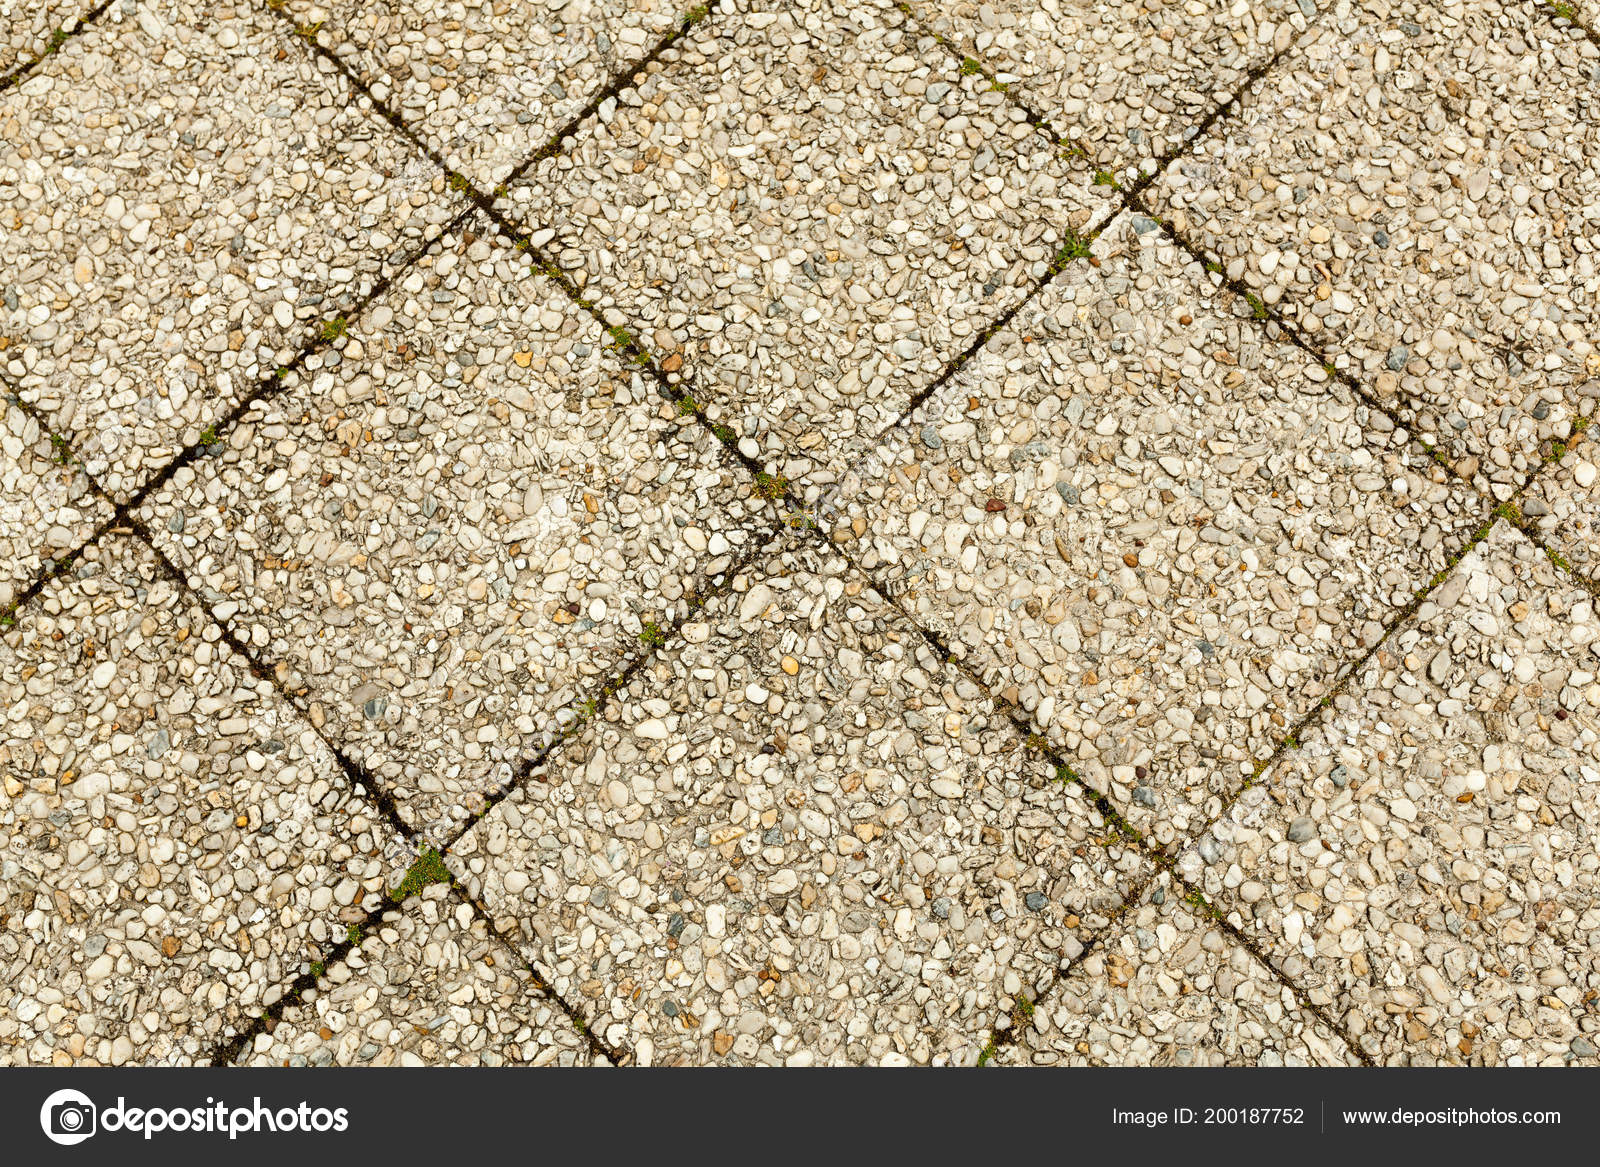 Carreaux De Ciment Texture Pebble Carrelage Carreaux Fond Sans Couture Ciment Mélangé Graviers